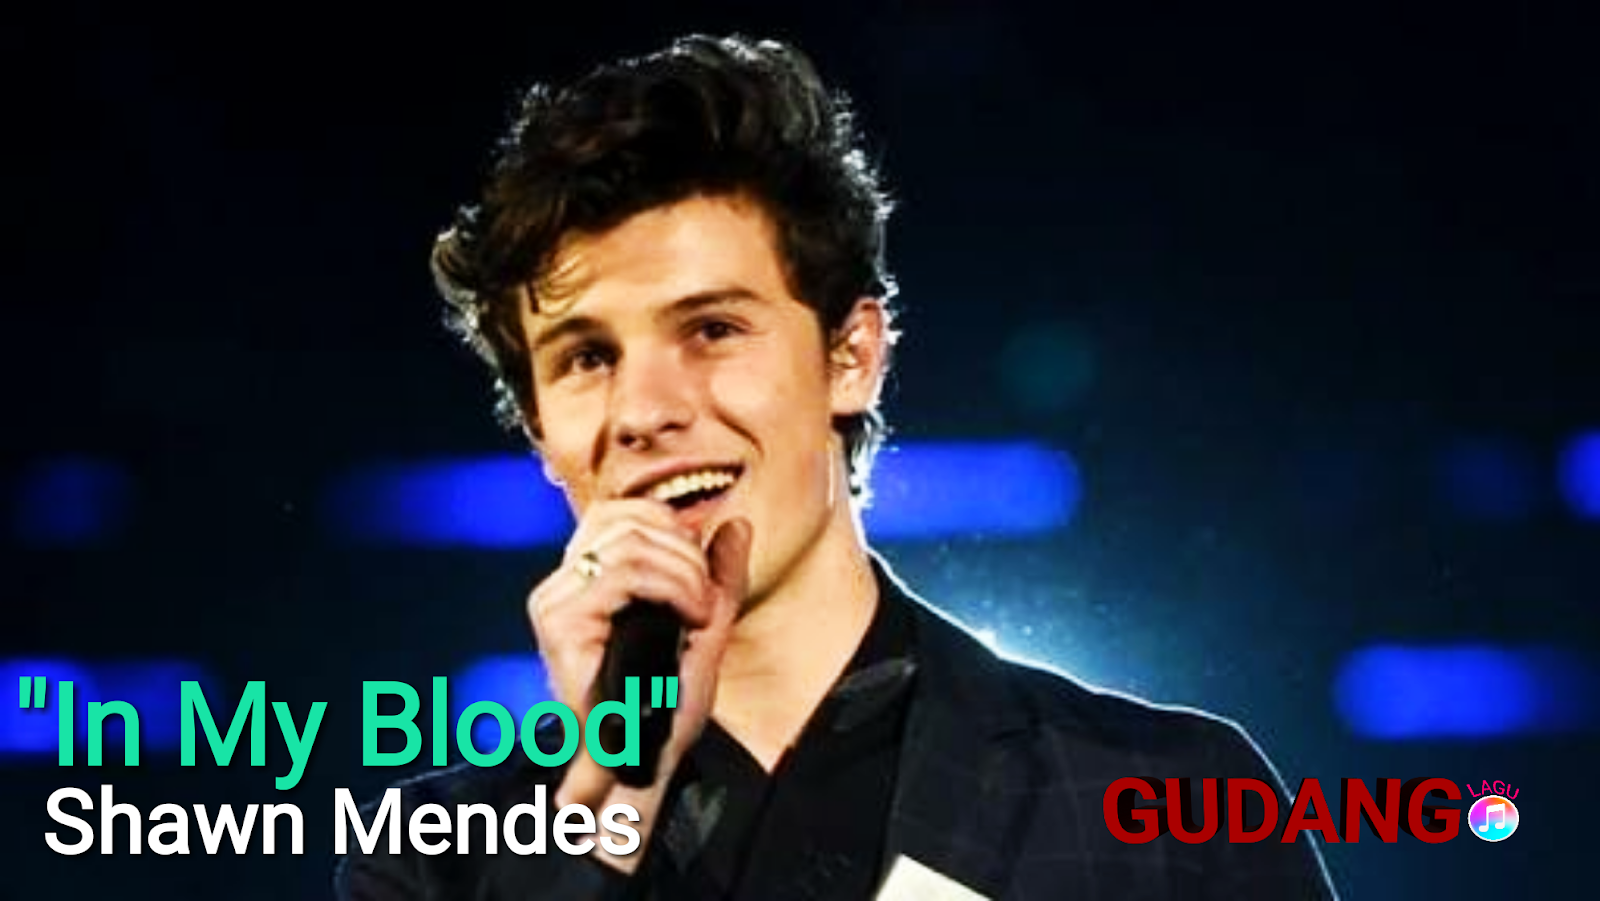 Shawn Mendes - In My Blood